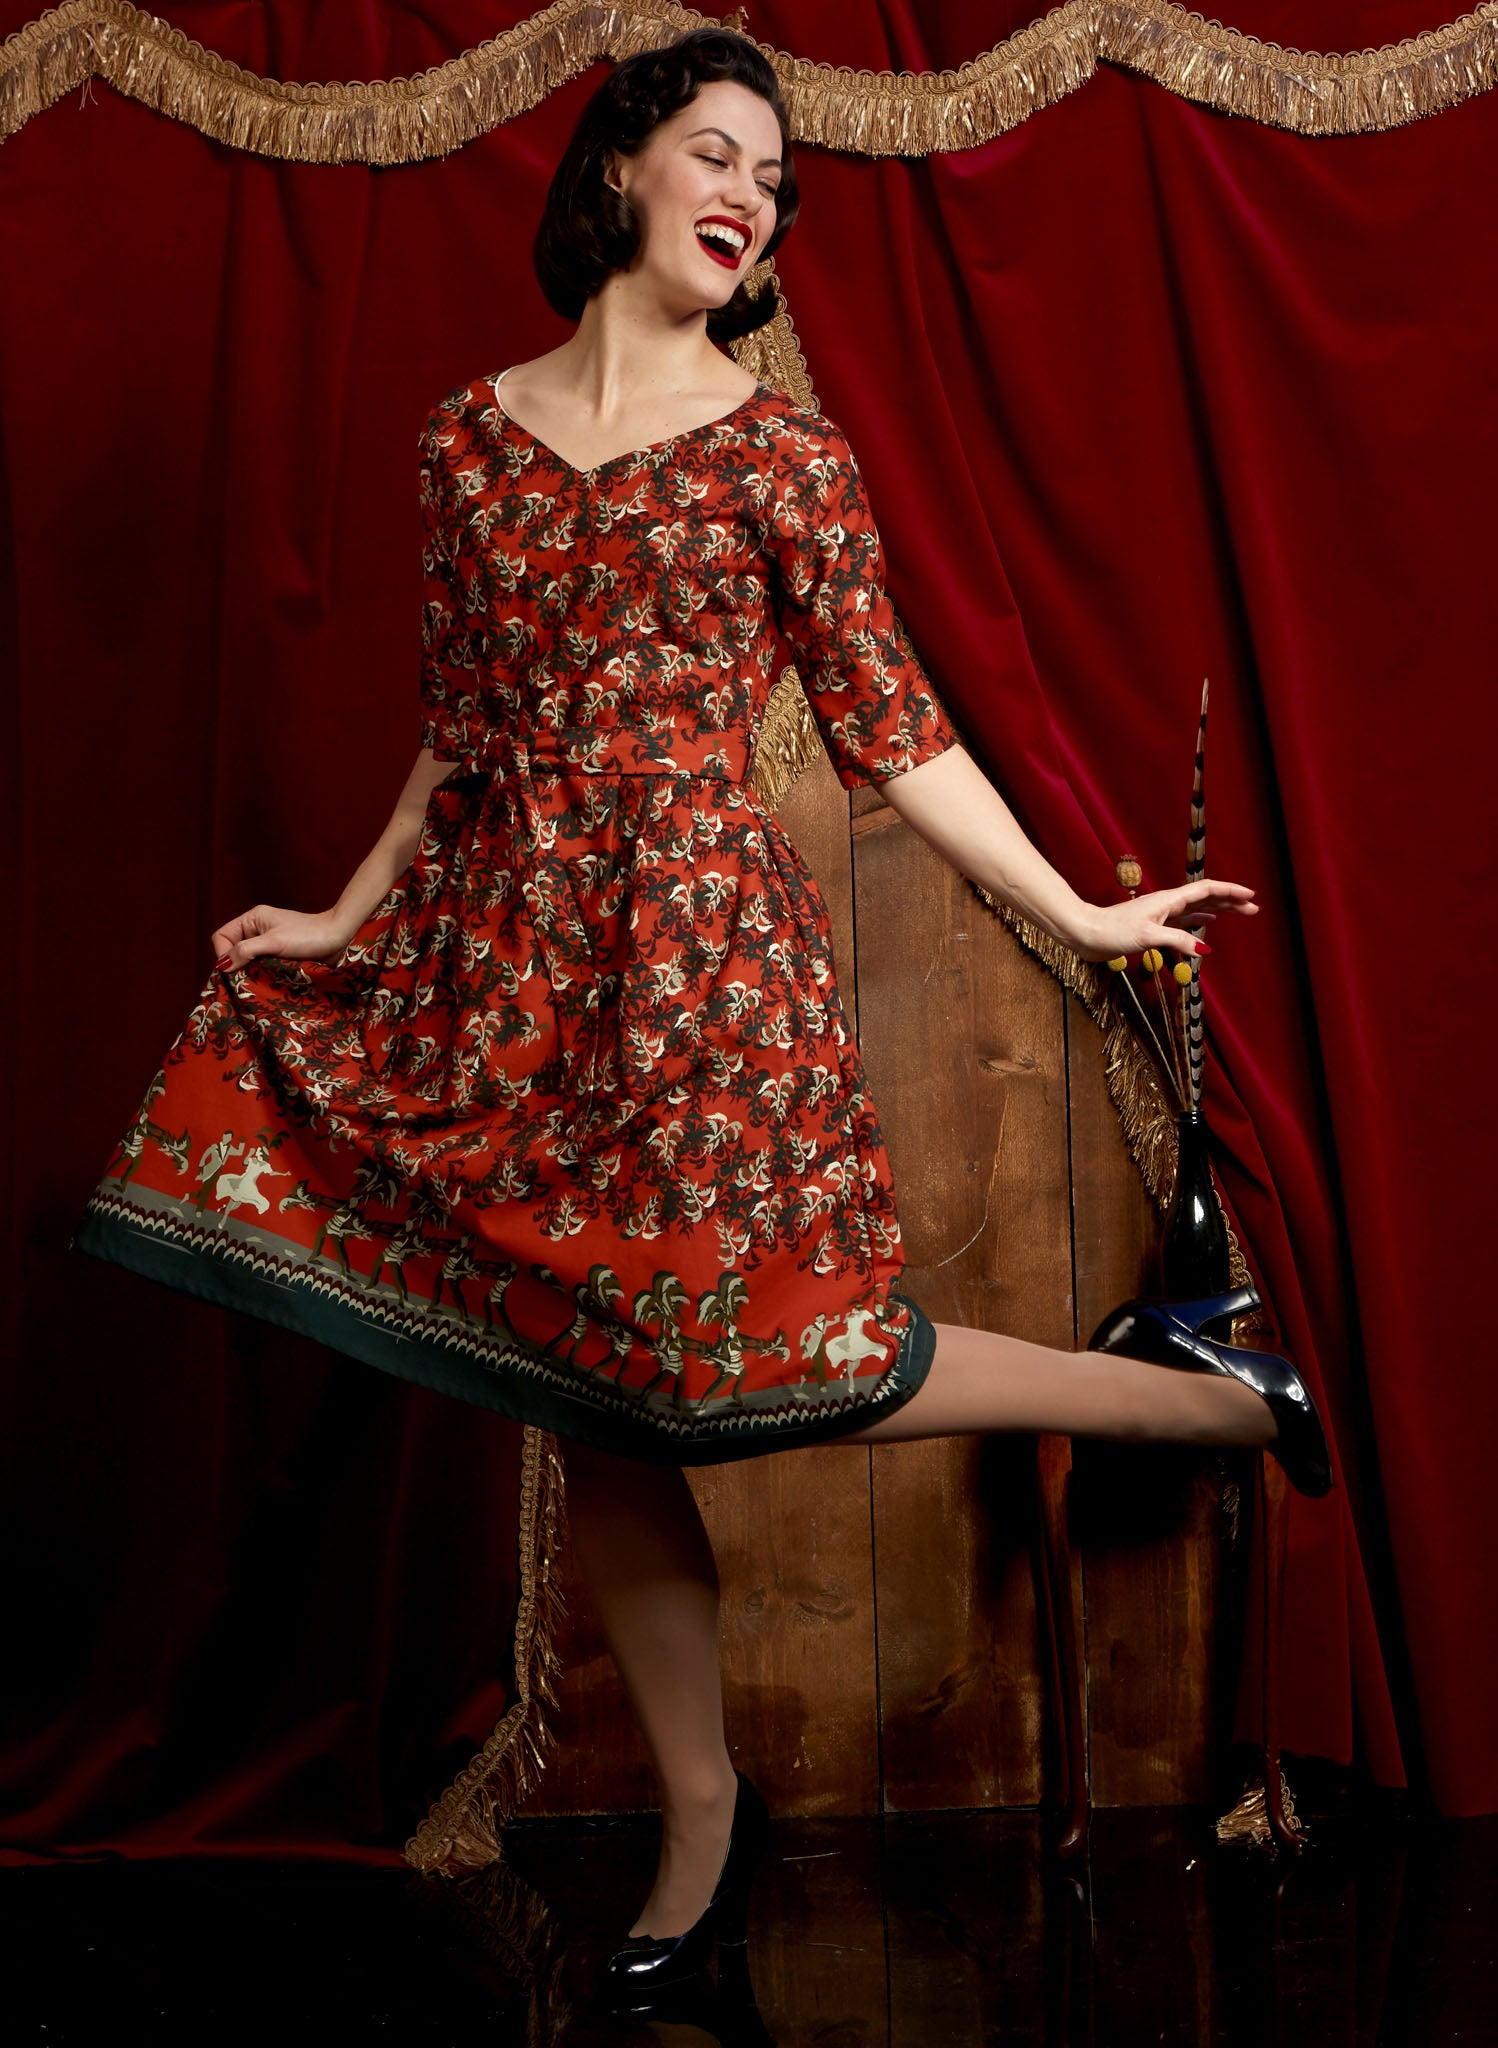 Evelyn - Rust Cabaret Dress